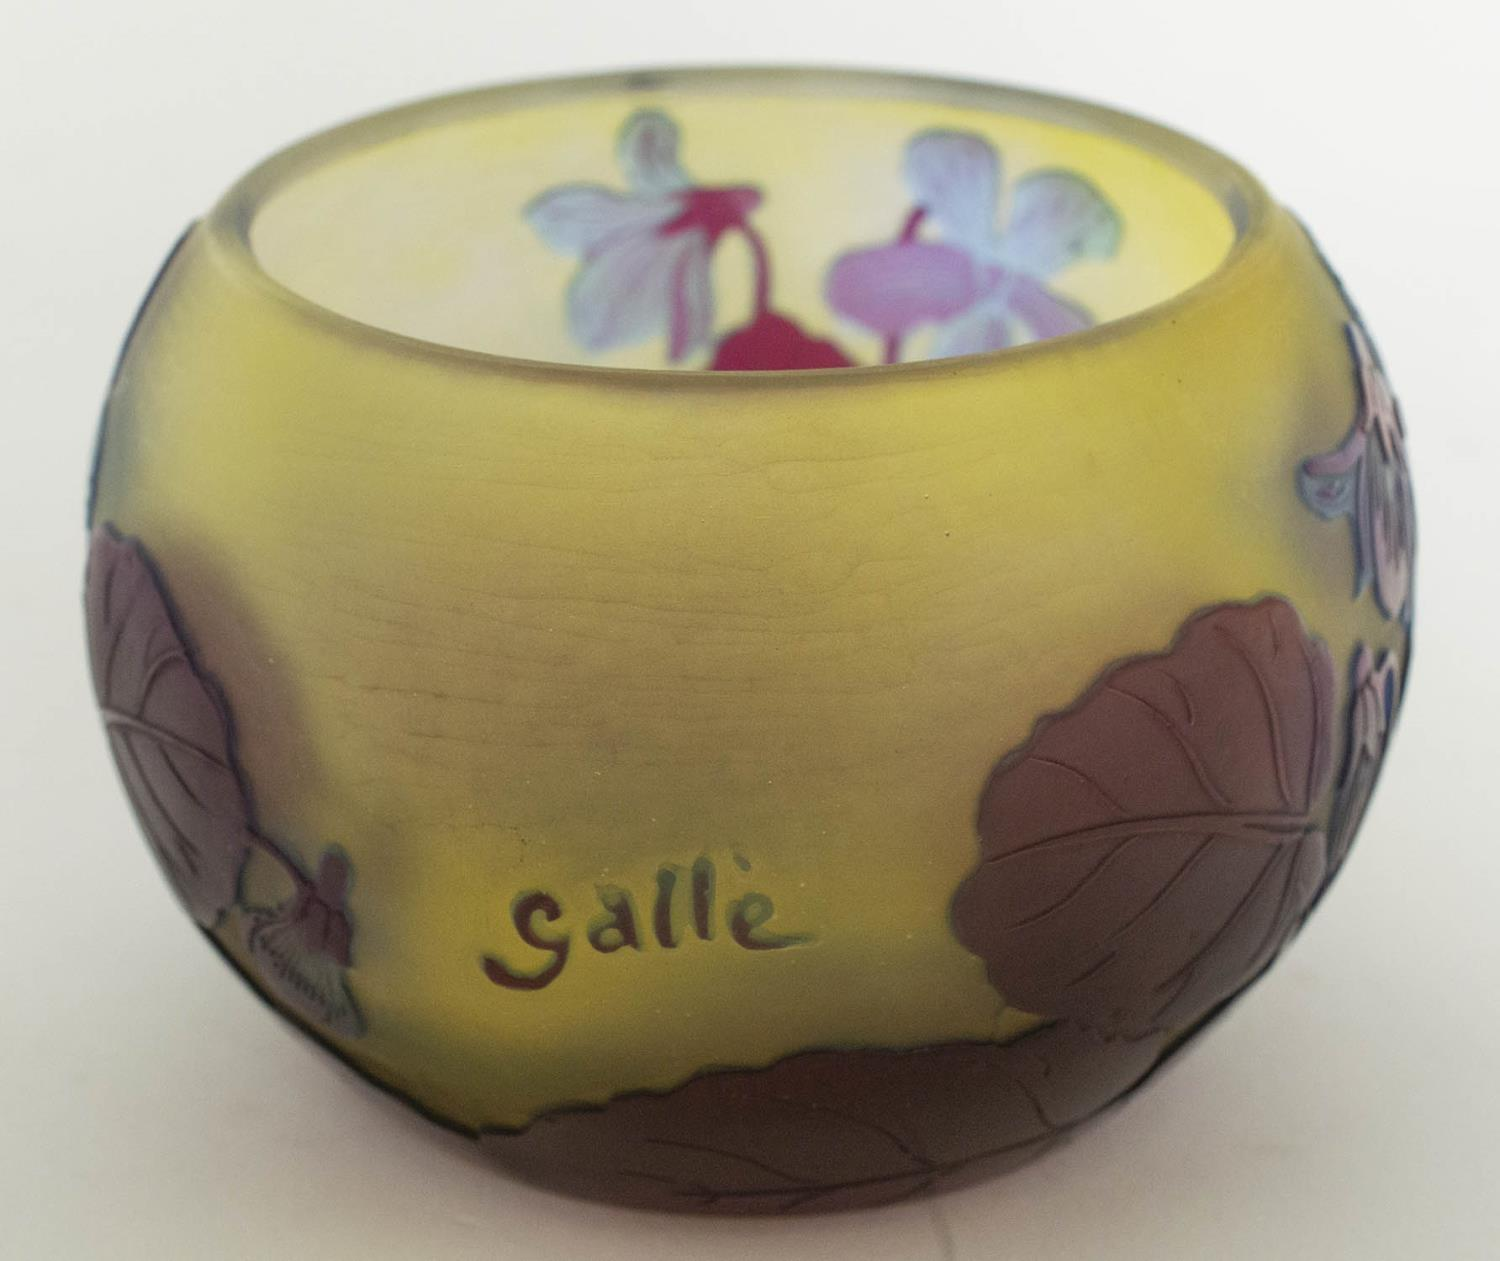 BOWL, Emile Galle Cameo glass, having subtle light blue and amethyst tones with foliate pattern, 8cm - Image 5 of 6